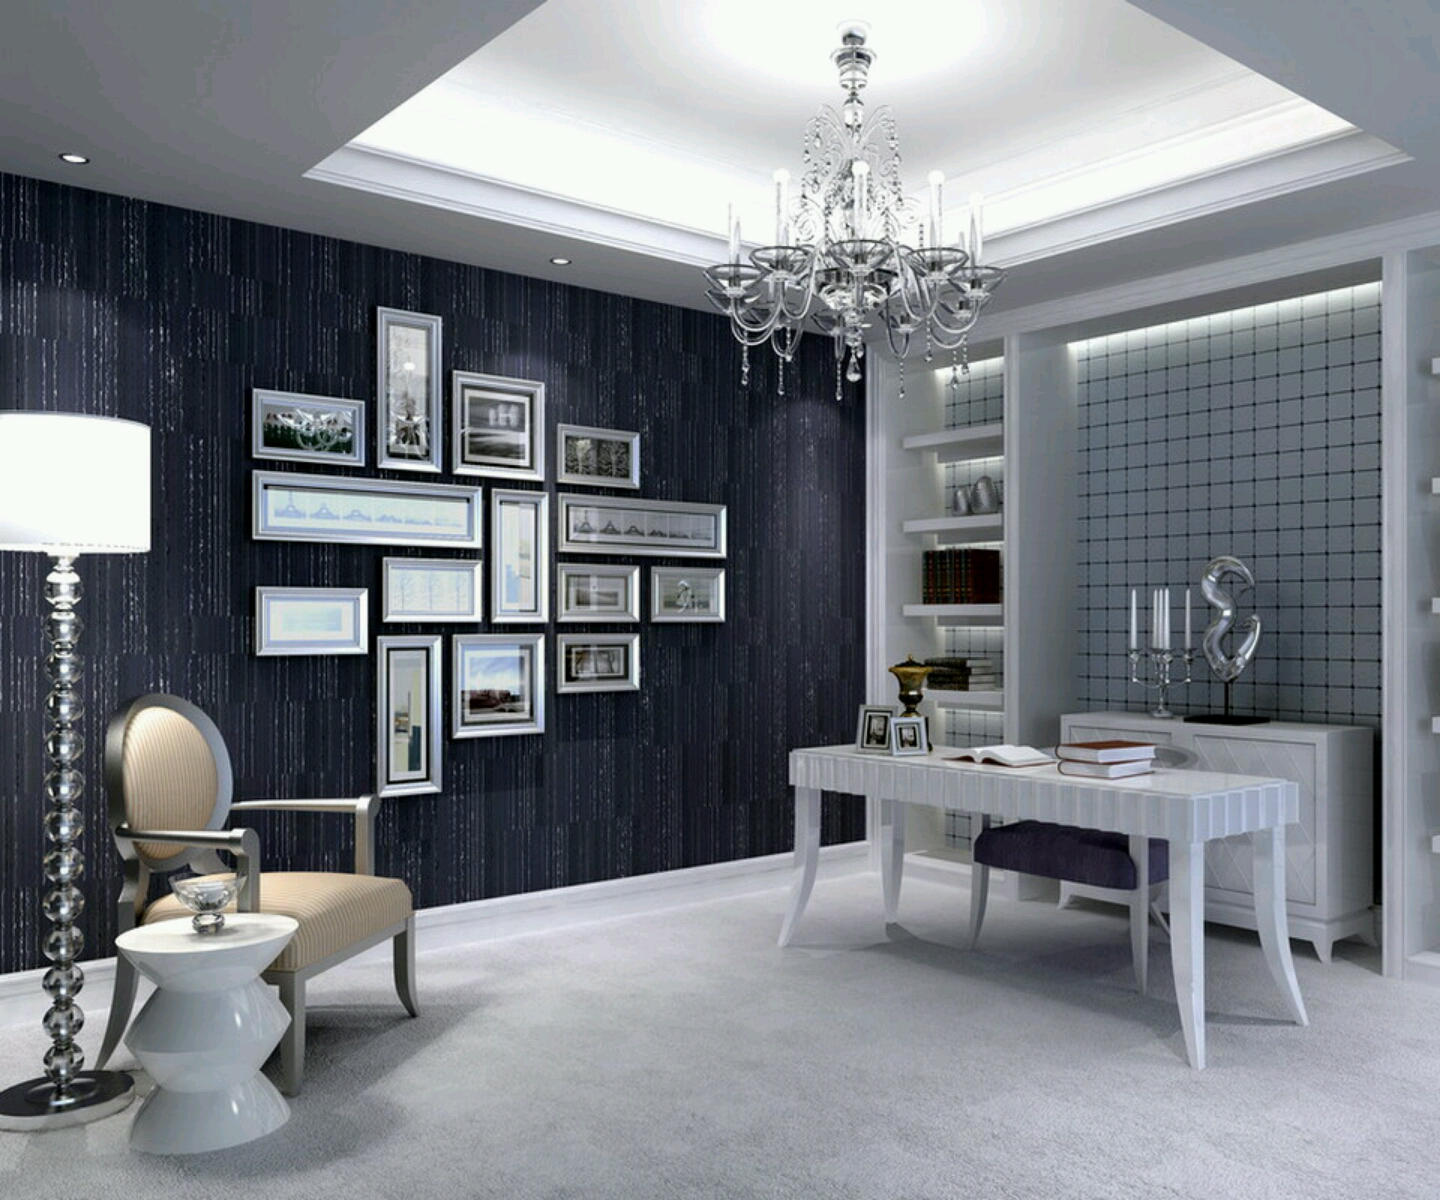 New home designs latest.: Modern homes studyrooms interior ...